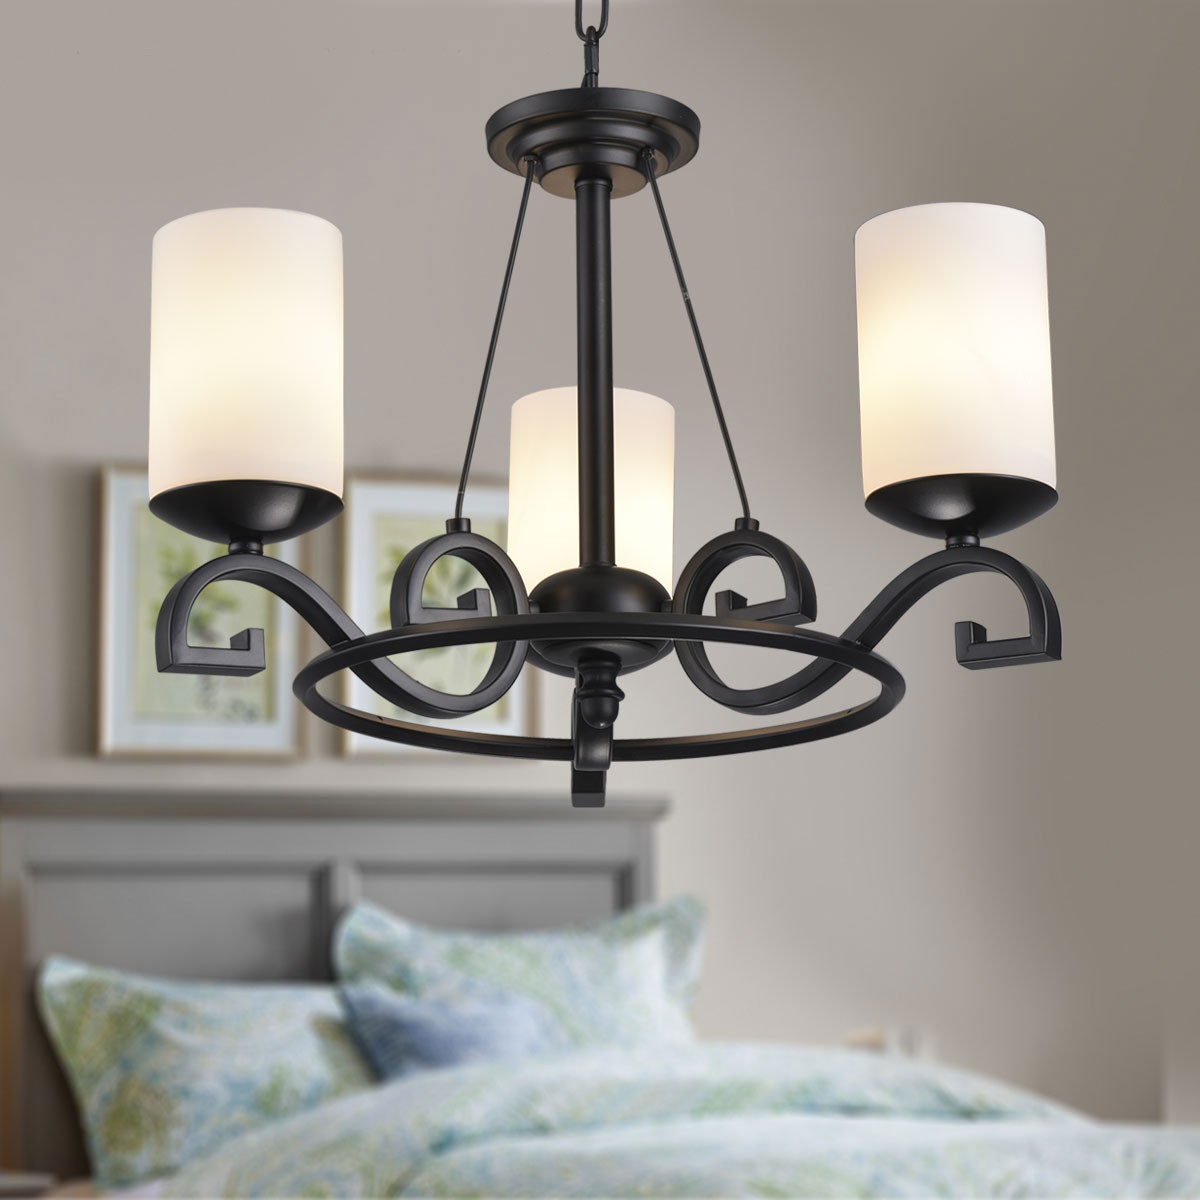 3Light Black Wrought Iron Chandelier with Glass Shades